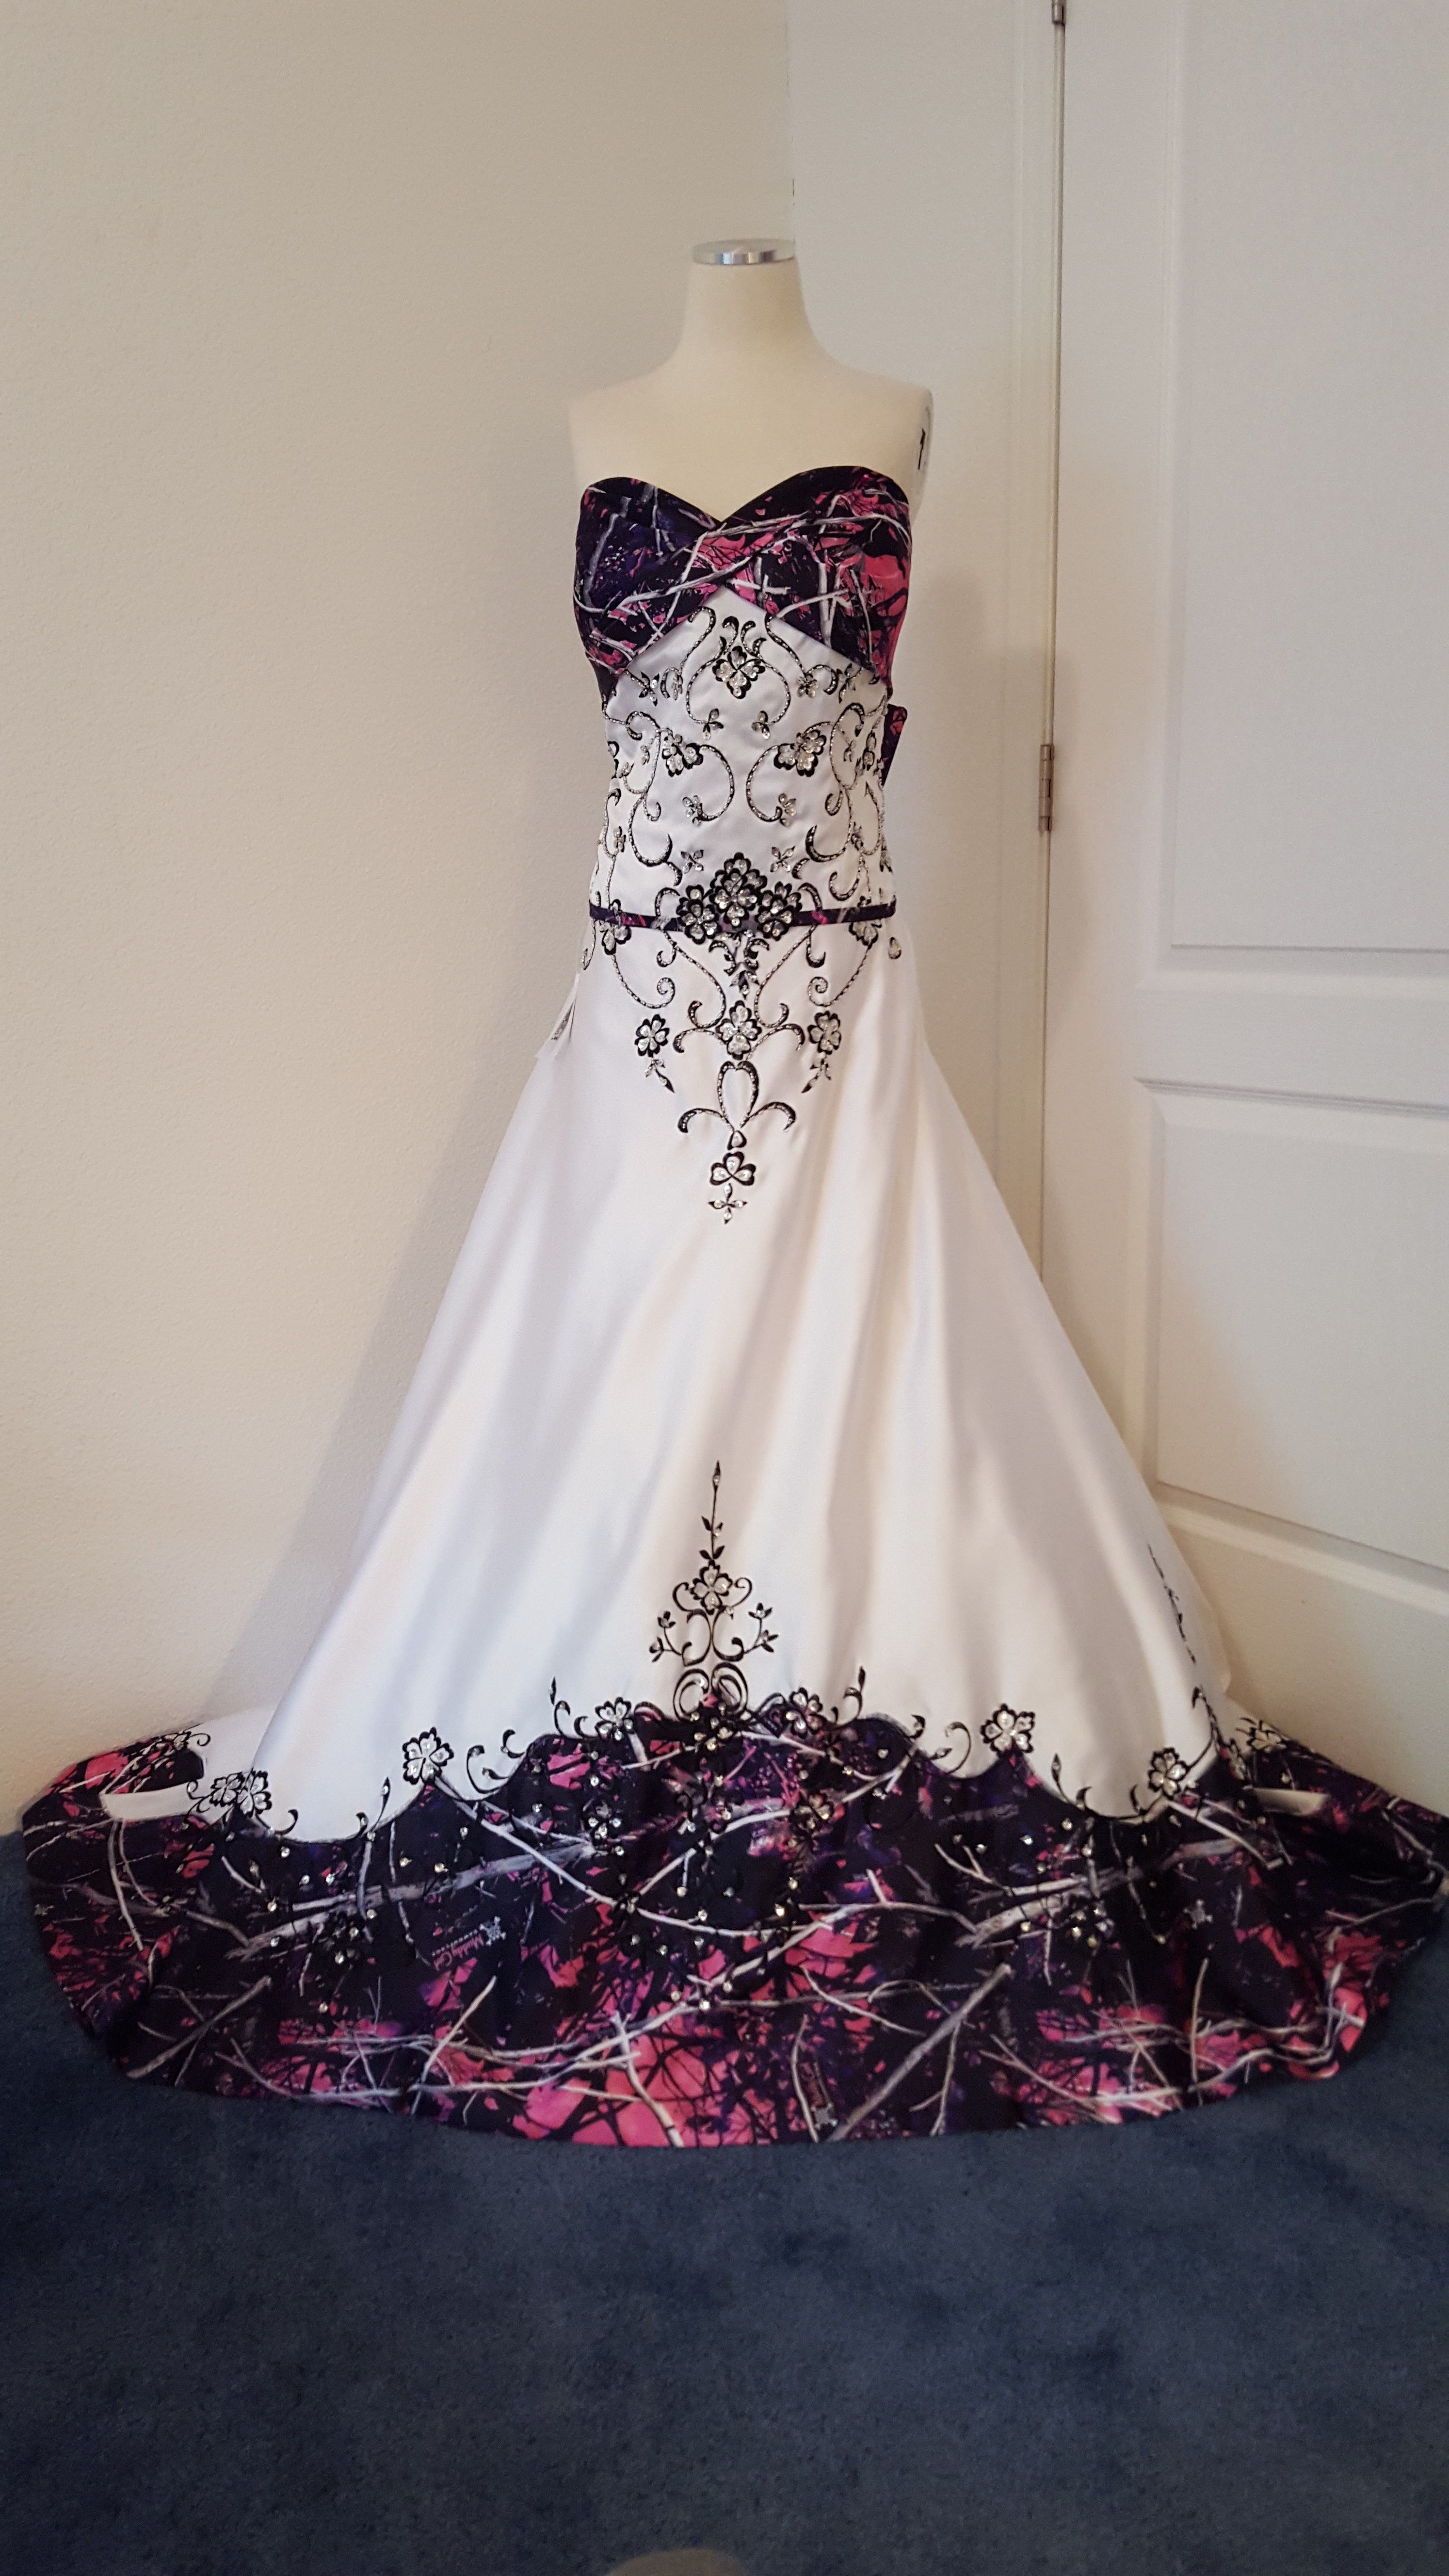 Anita wedding gown with muddy girl camo as the accent ucolor